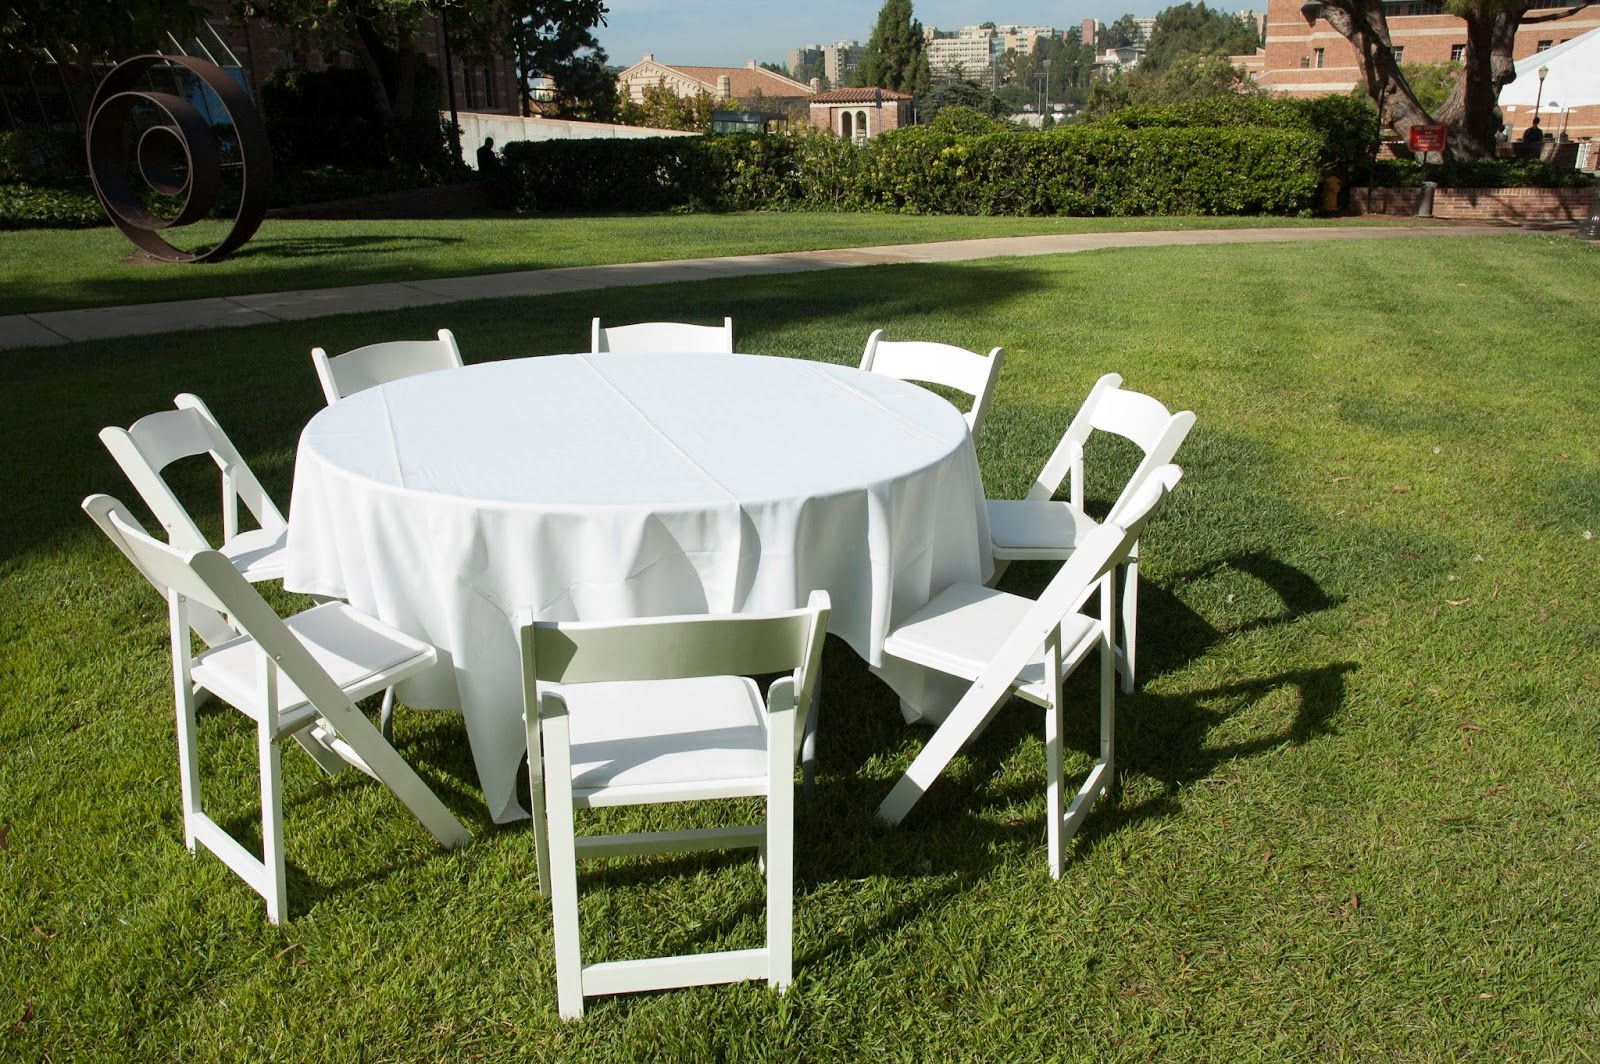 table chair rentals orlando garden cushions argos low cost area to visit our tables and chairs other products us at www centralfloridaweddingwarehouse com or call 407 791 6660